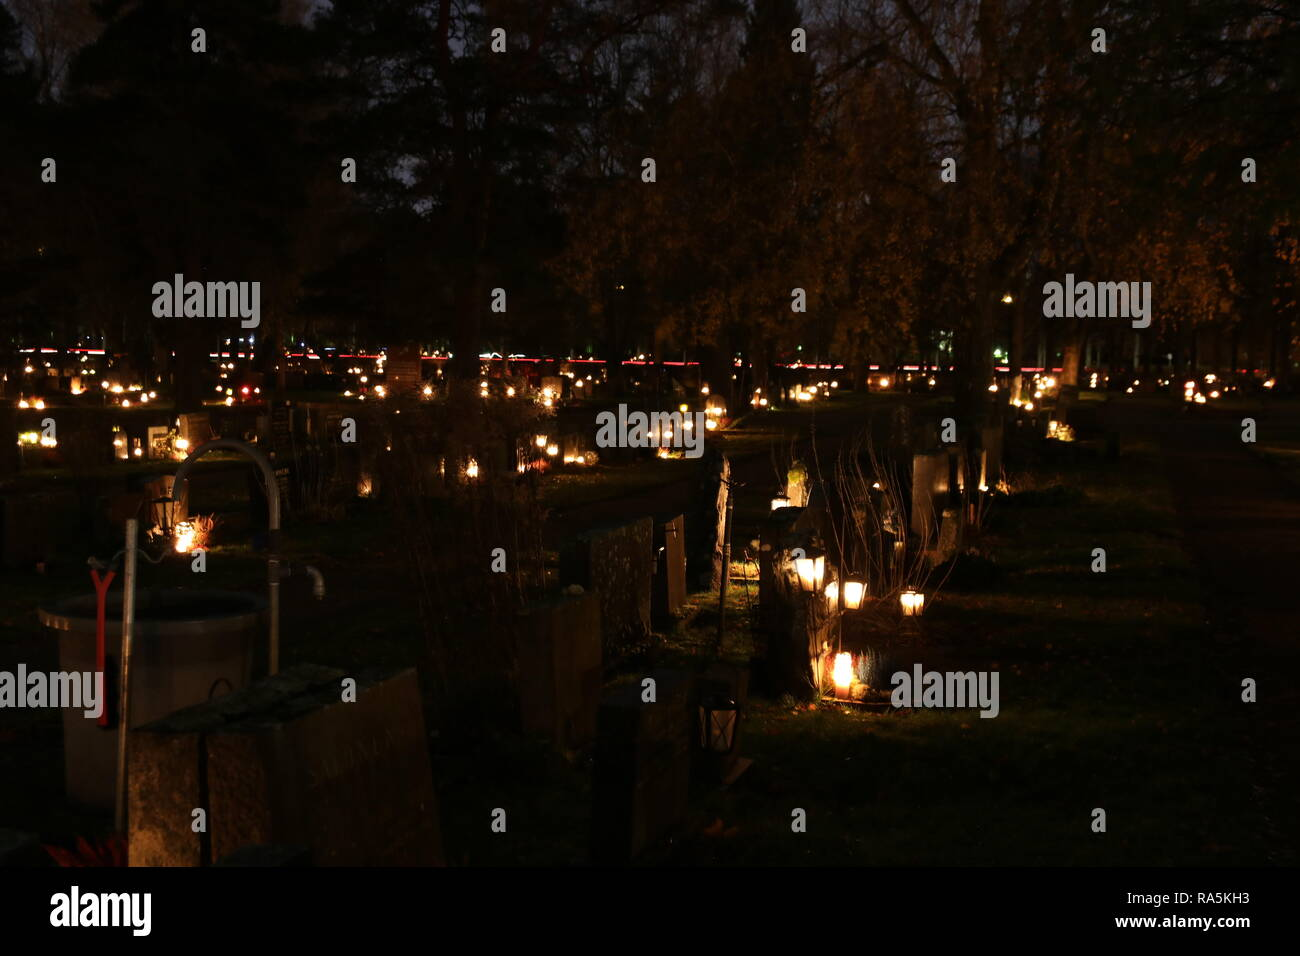 Malmi cemetery at Halloween night - Stock Image